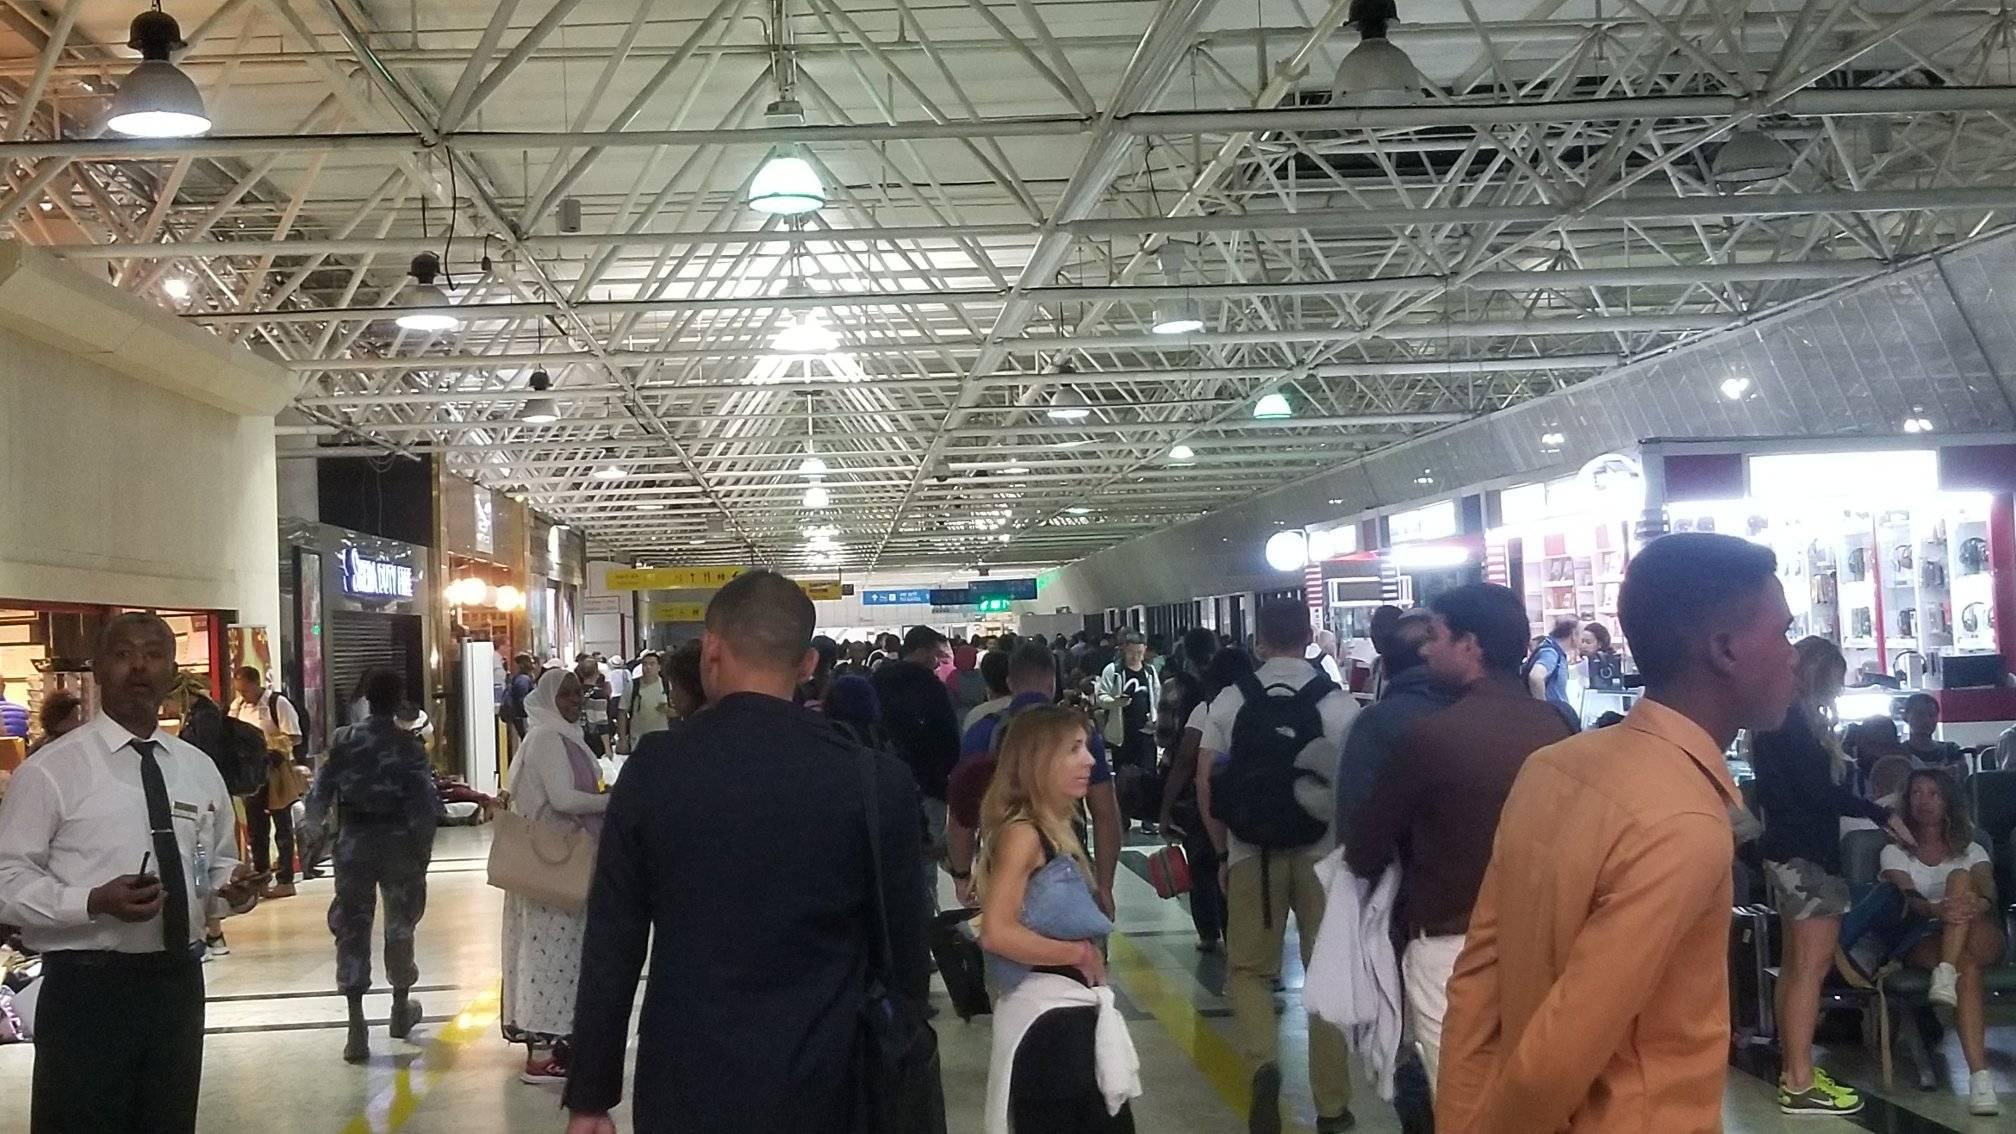 Addis Ababa Airport Sees Record Upsurge in Number of Passengers Addis Ababa, 18 July 2019